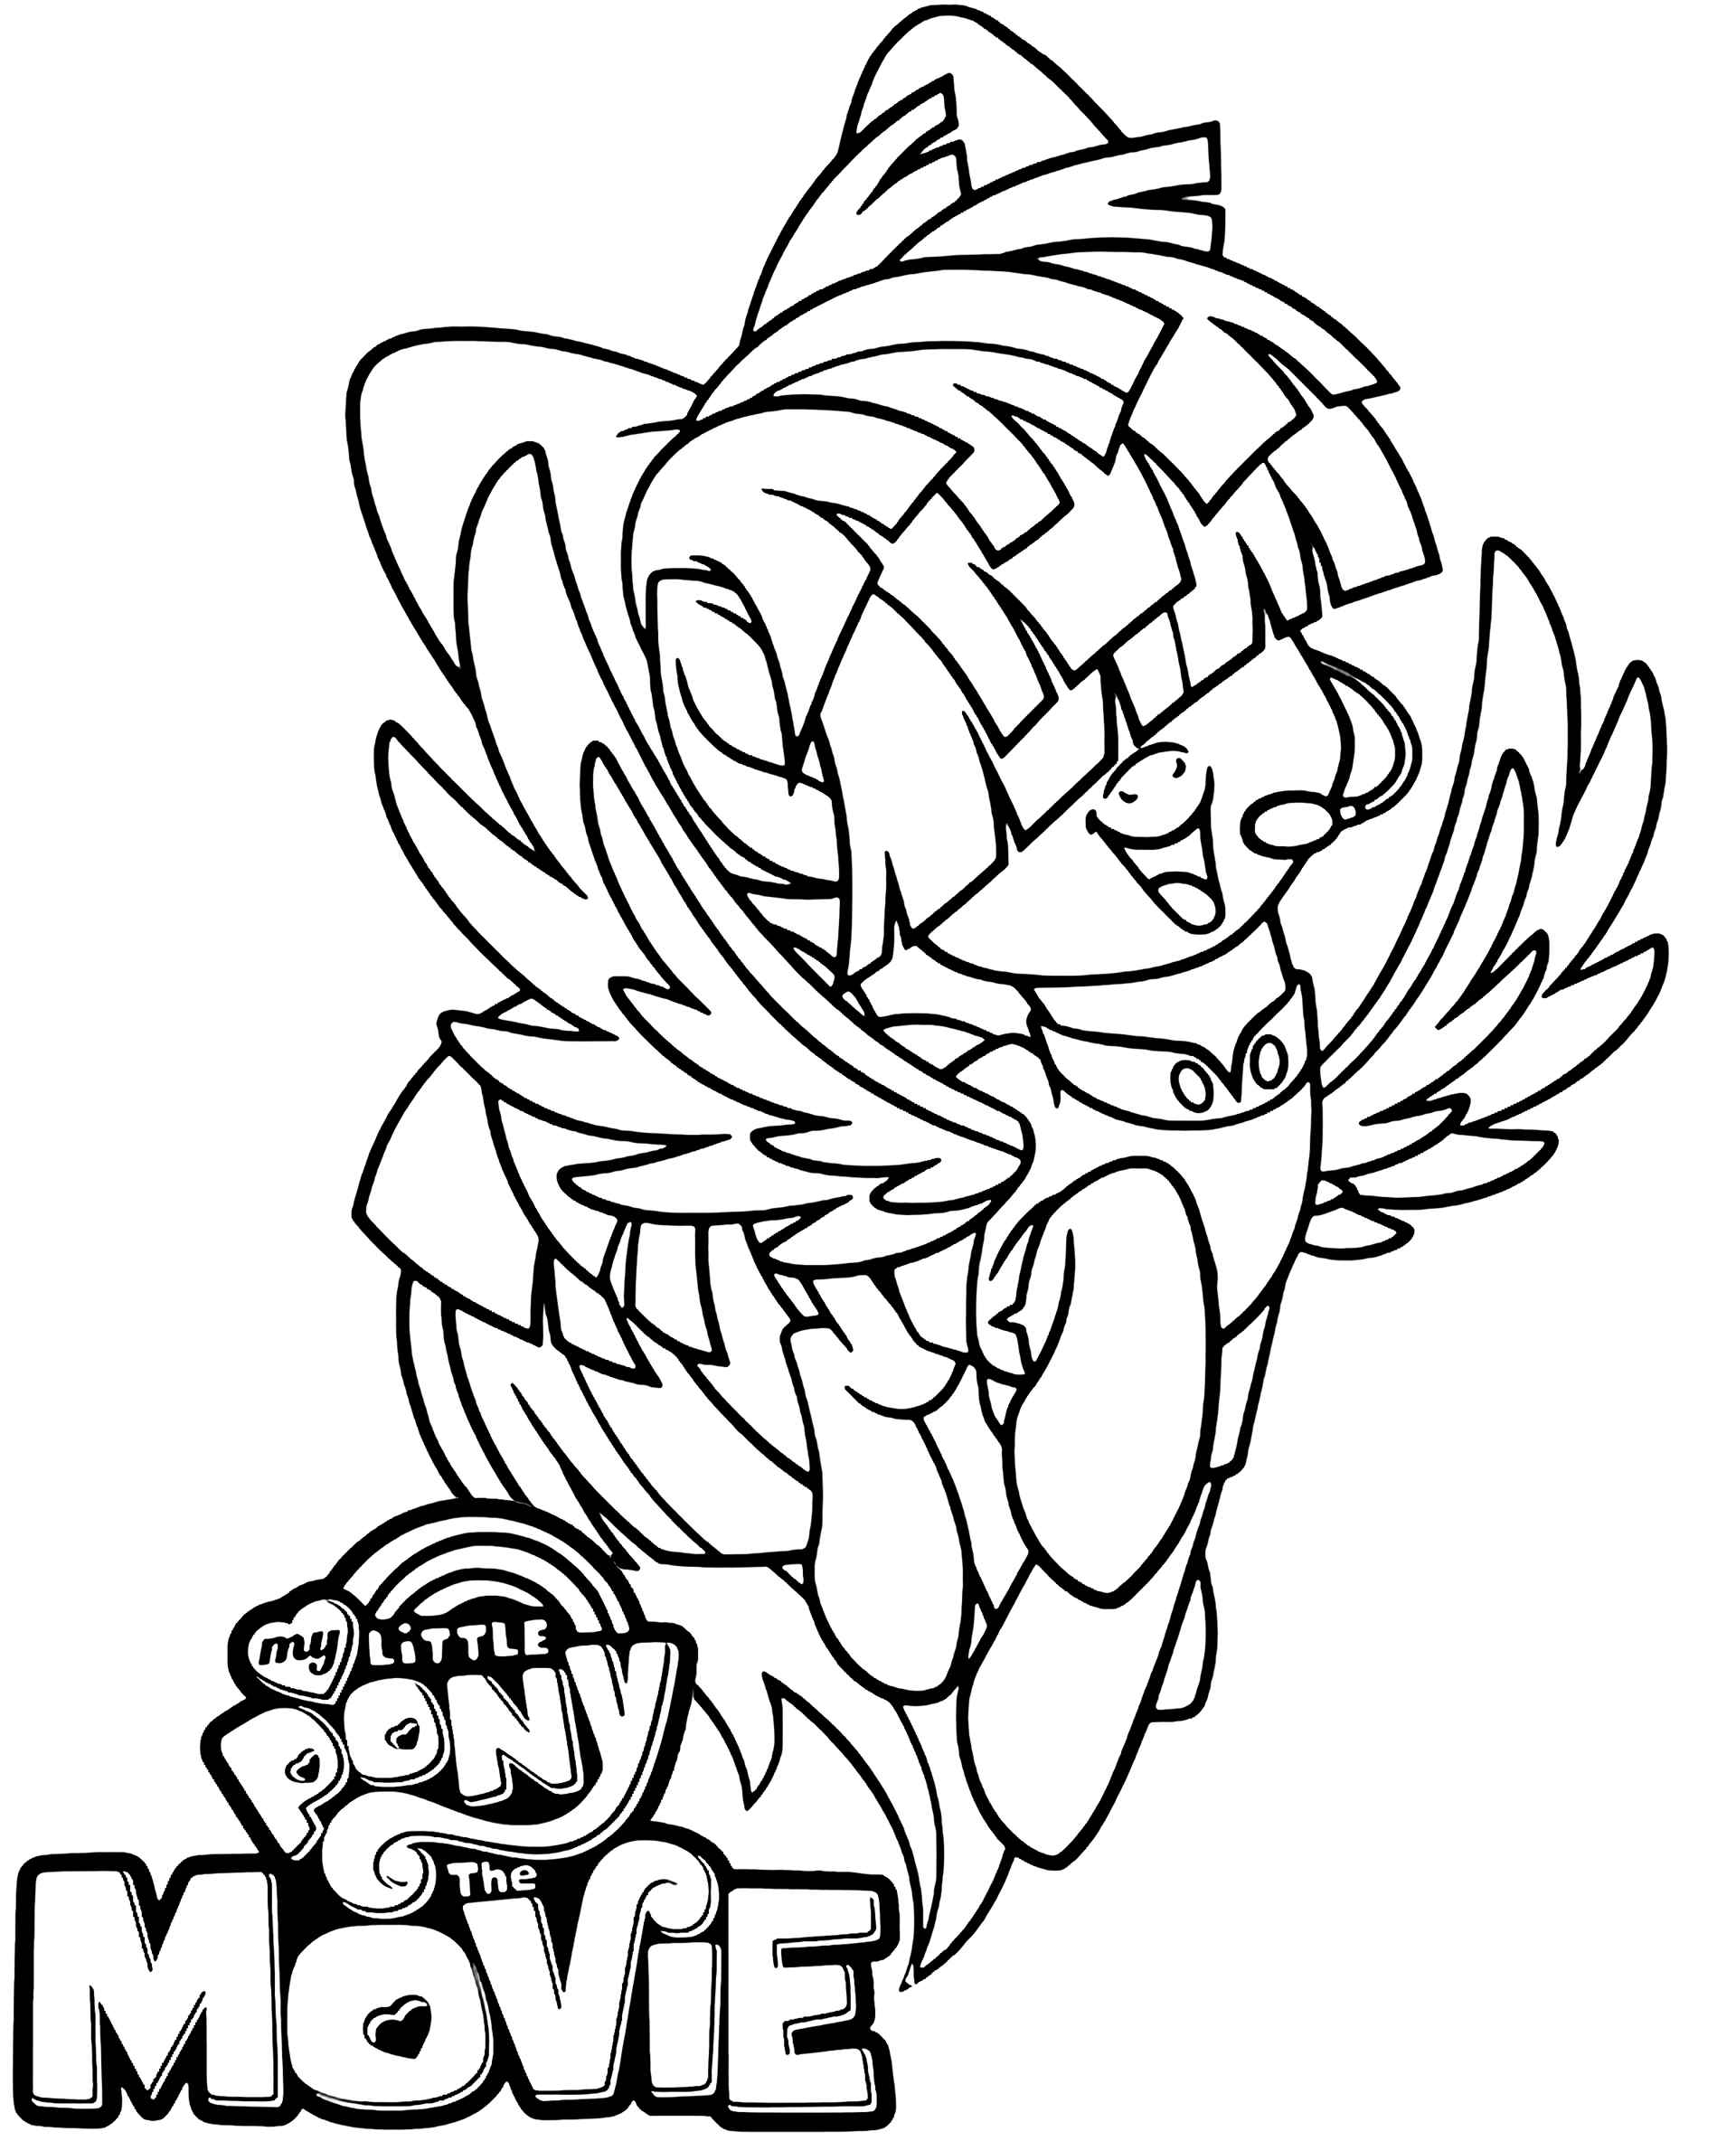 Image Of Smiling Songbird Serenade From My Little Pony